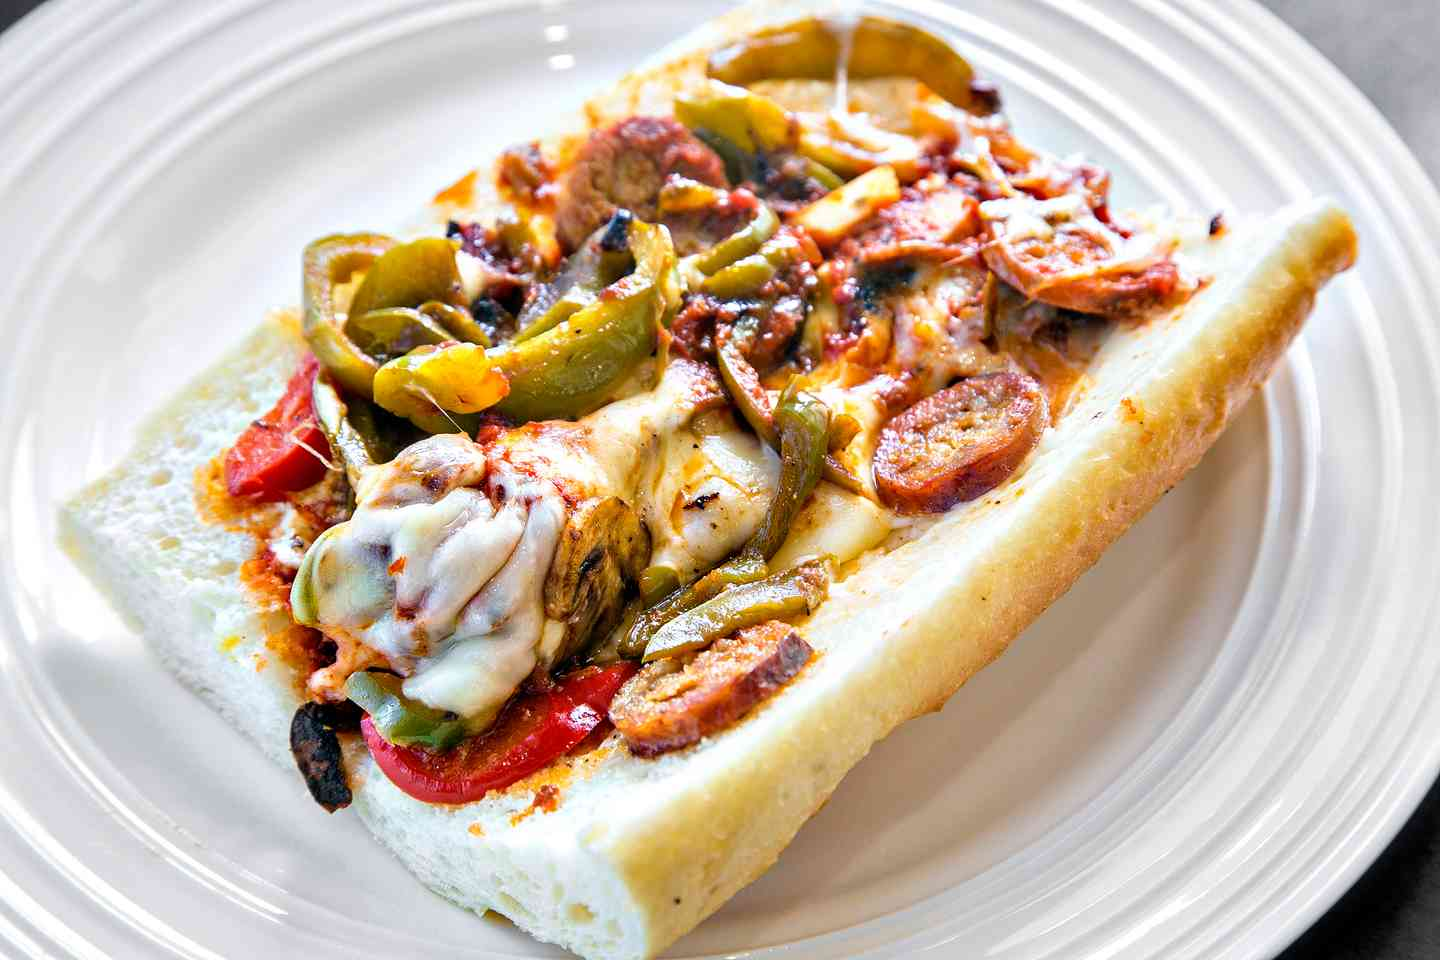 ITALIAN SAUSAGE PHILLY